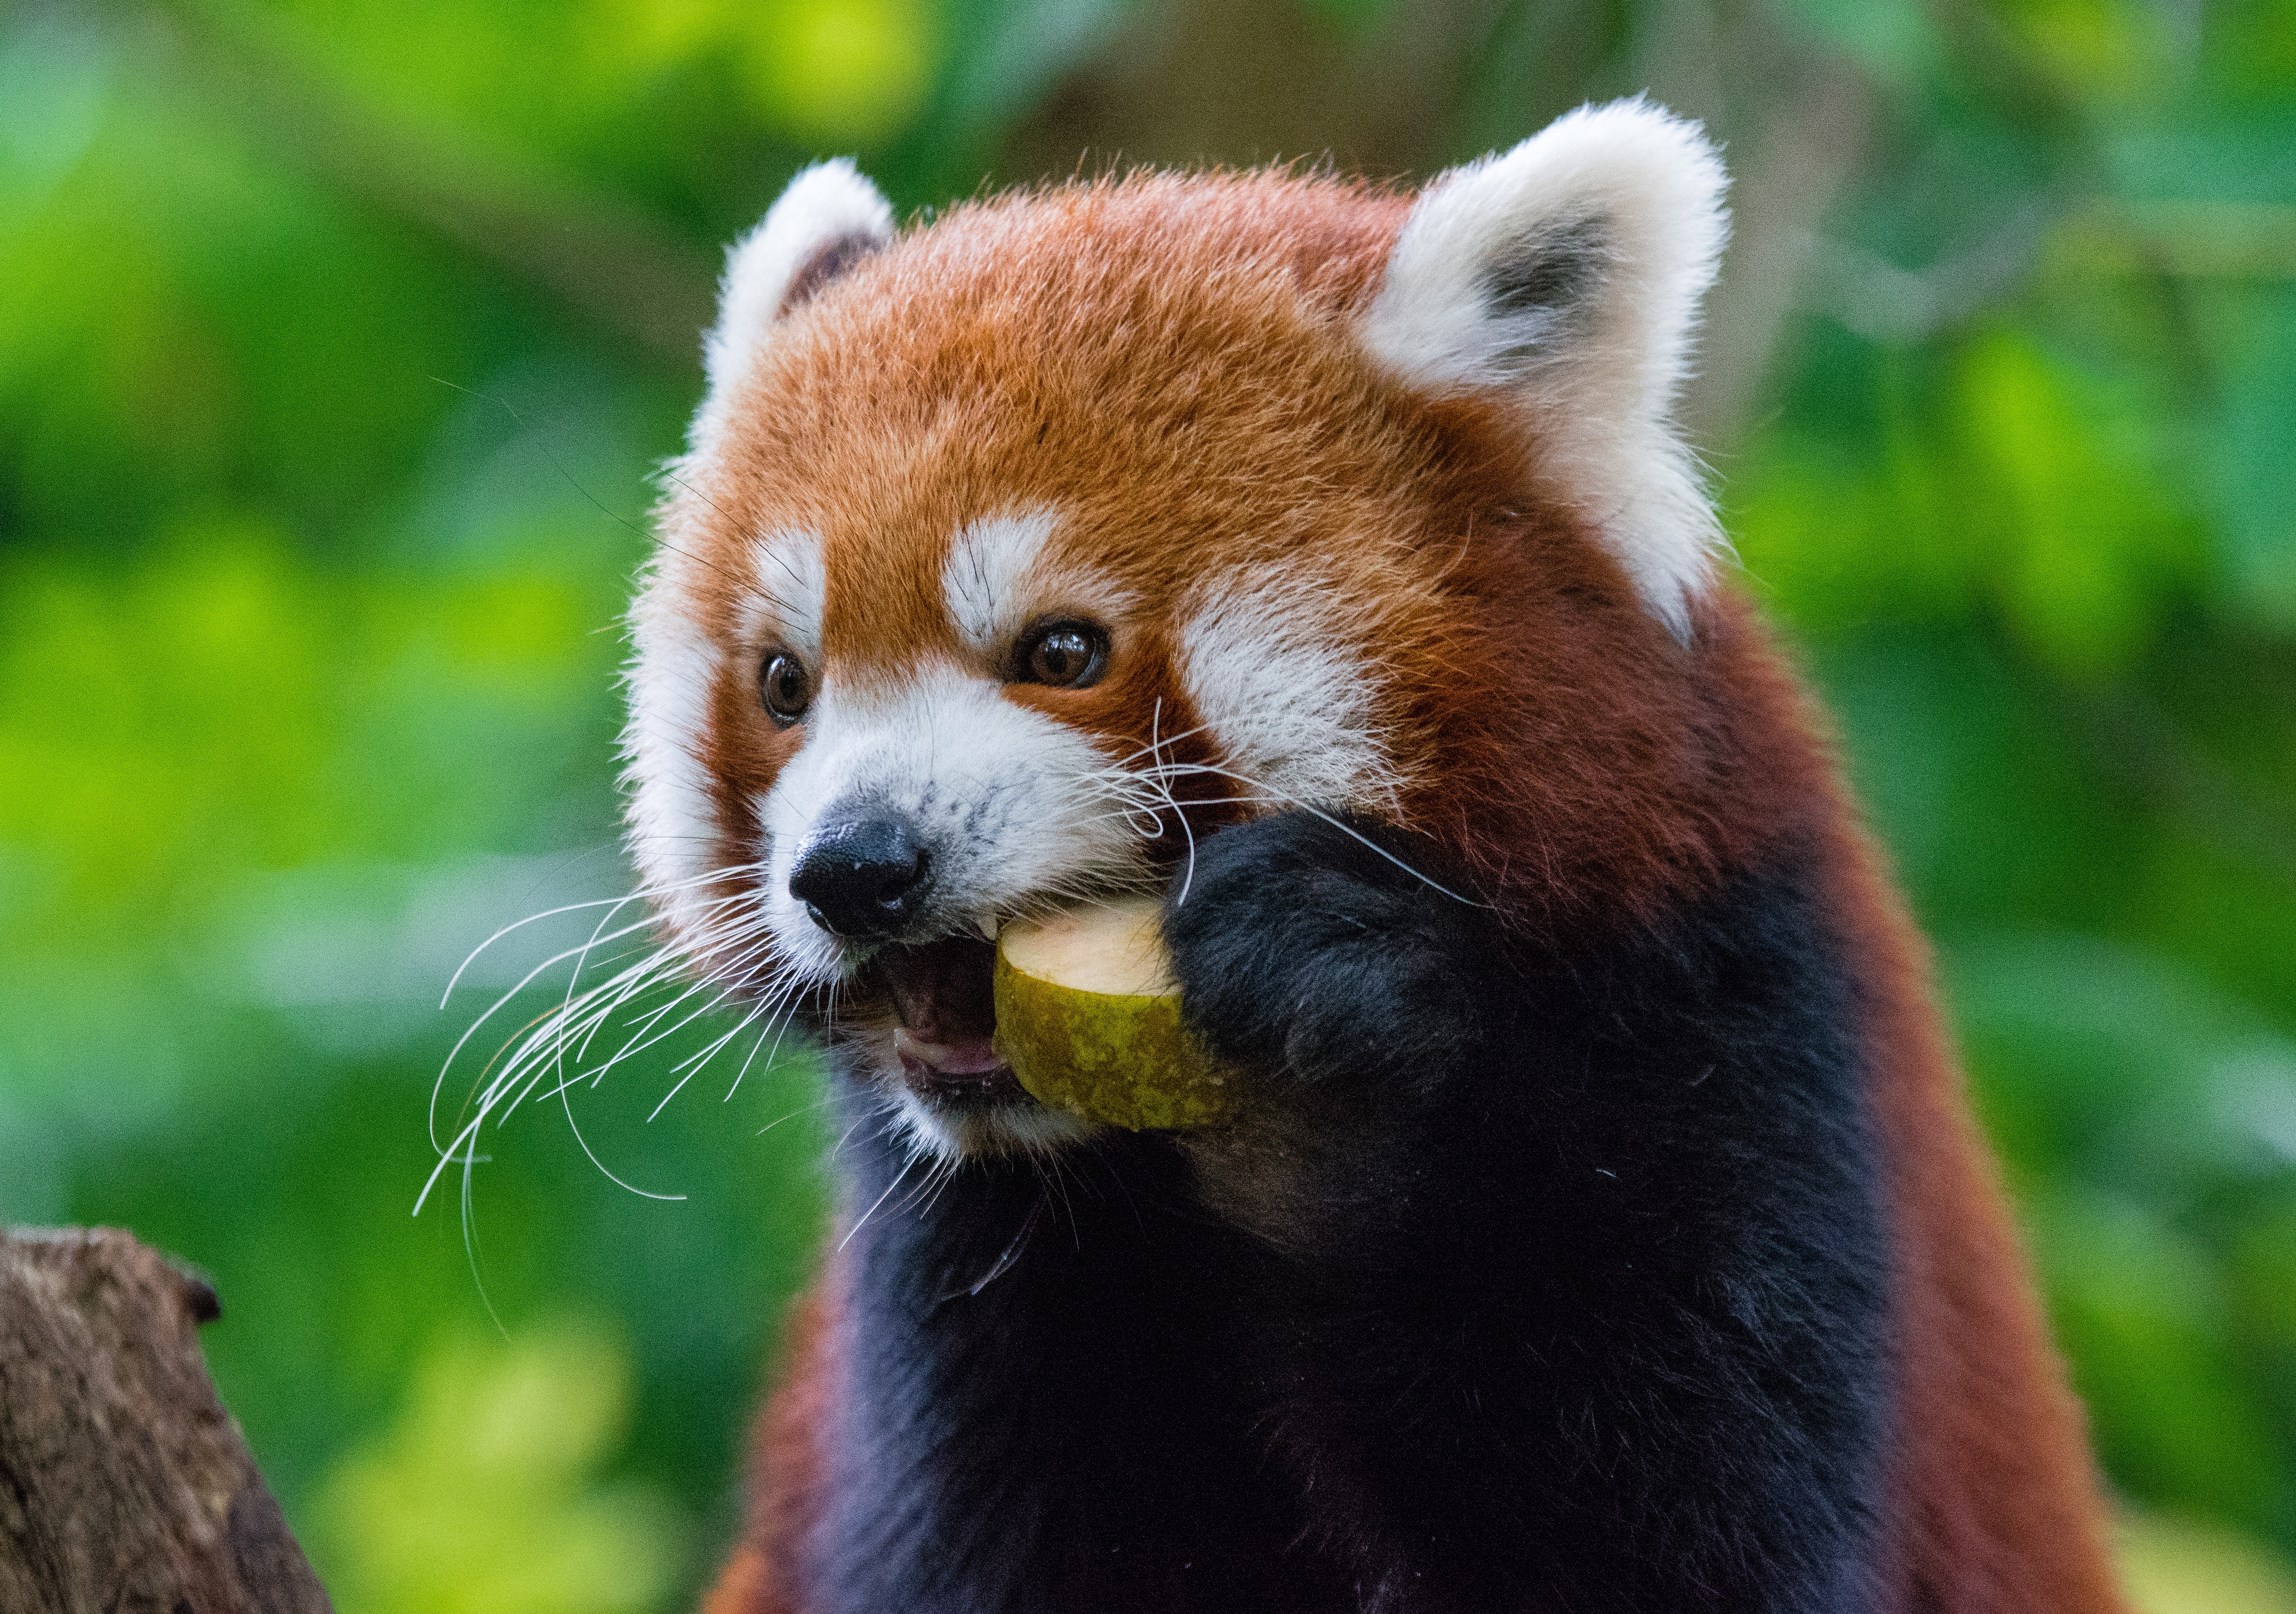 105020 download wallpaper Food, Animals, Red Panda, Fiery Panda screensavers and pictures for free